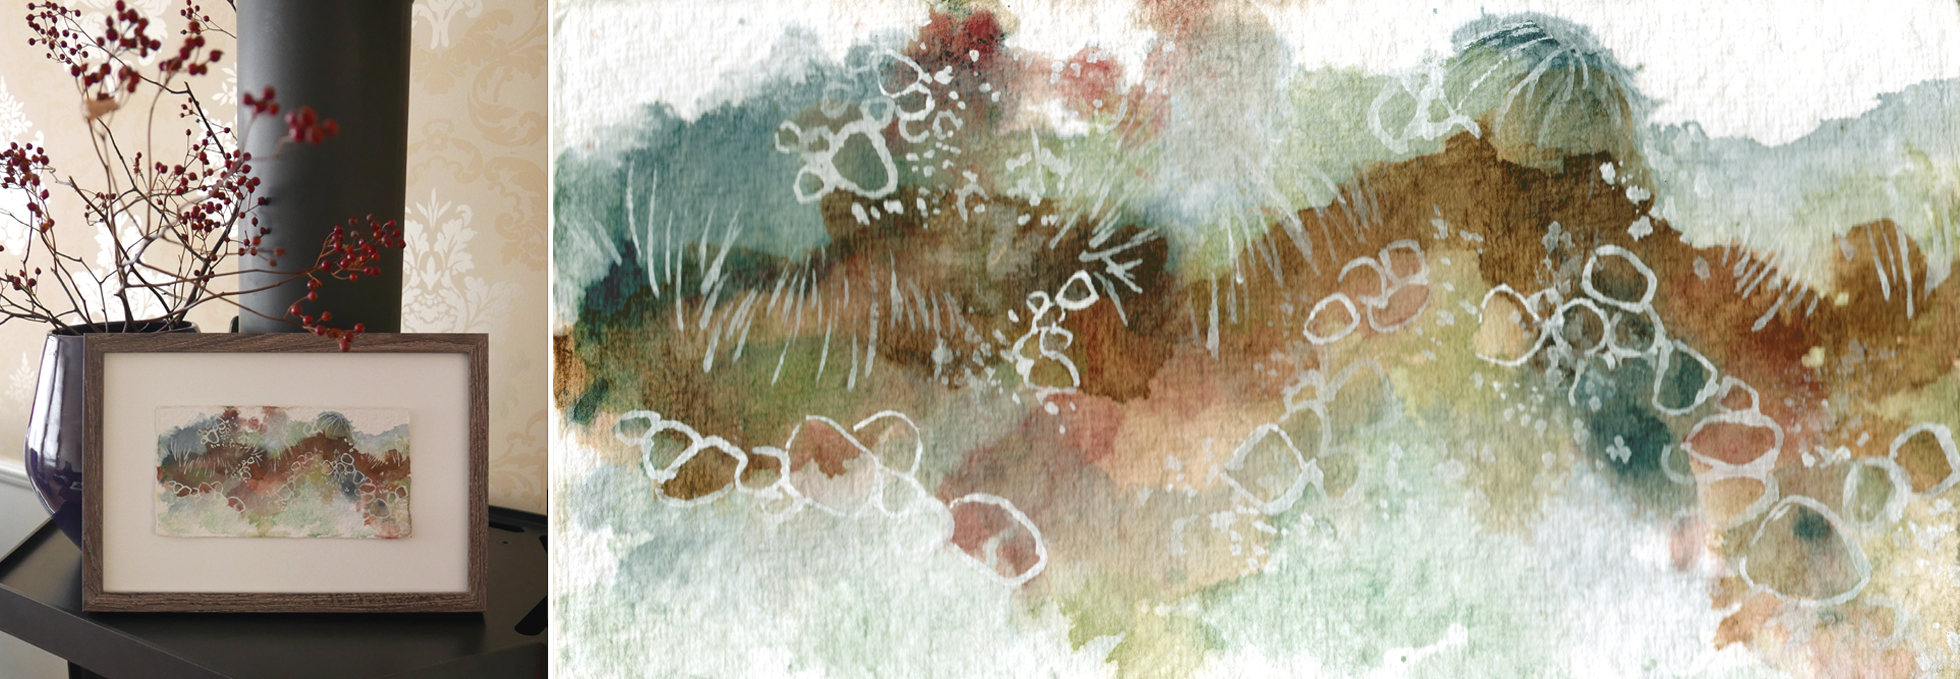 Katja Schmitt New ZealandTongariro Watercolor Aquarell Painting